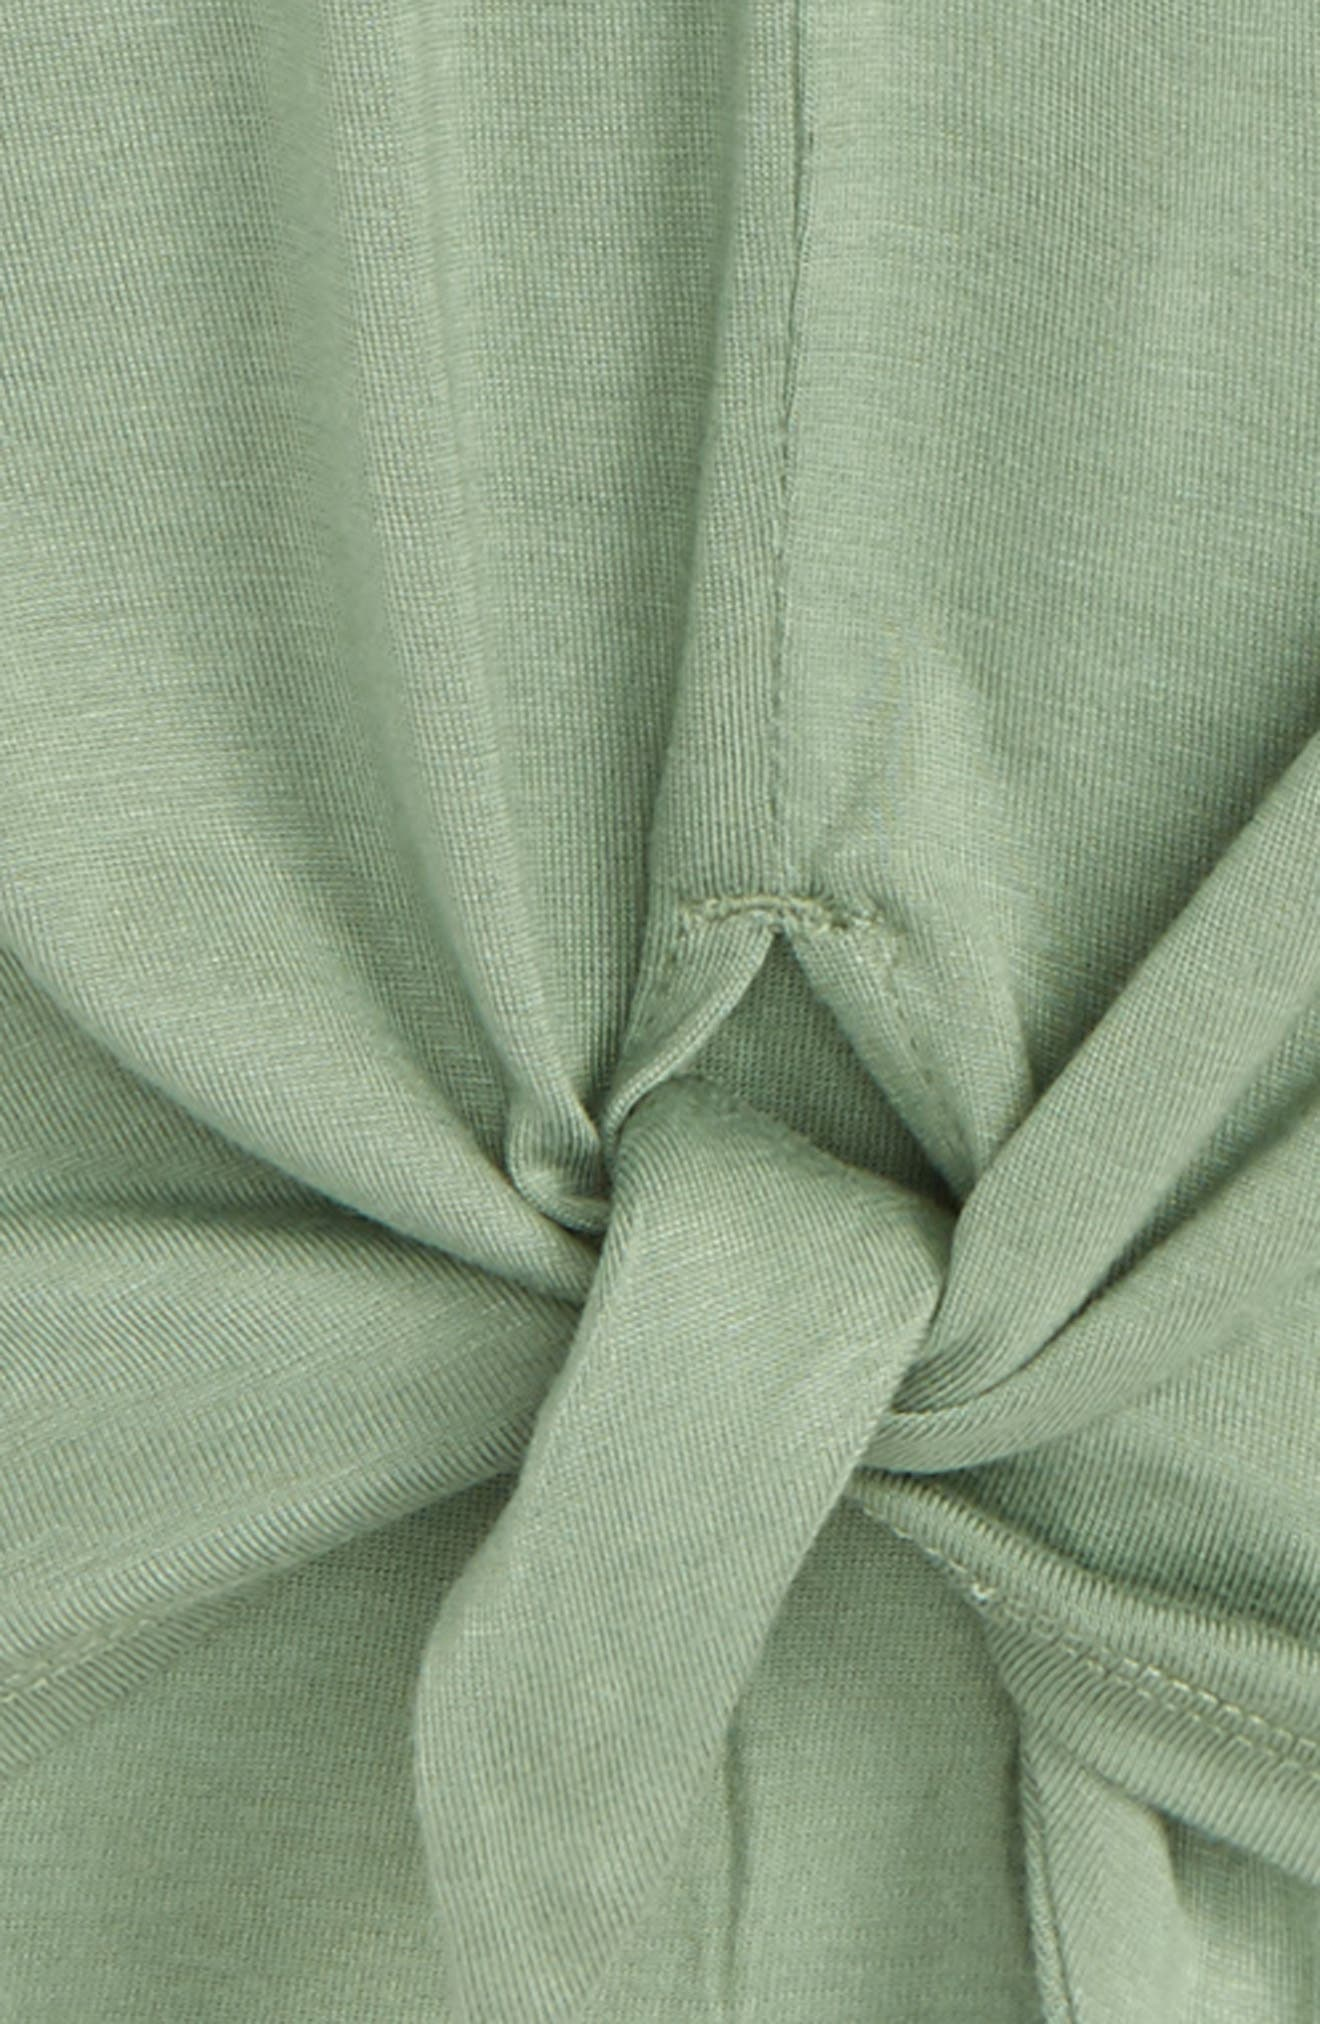 Knot Tee,                             Alternate thumbnail 2, color,                             Green Hedge